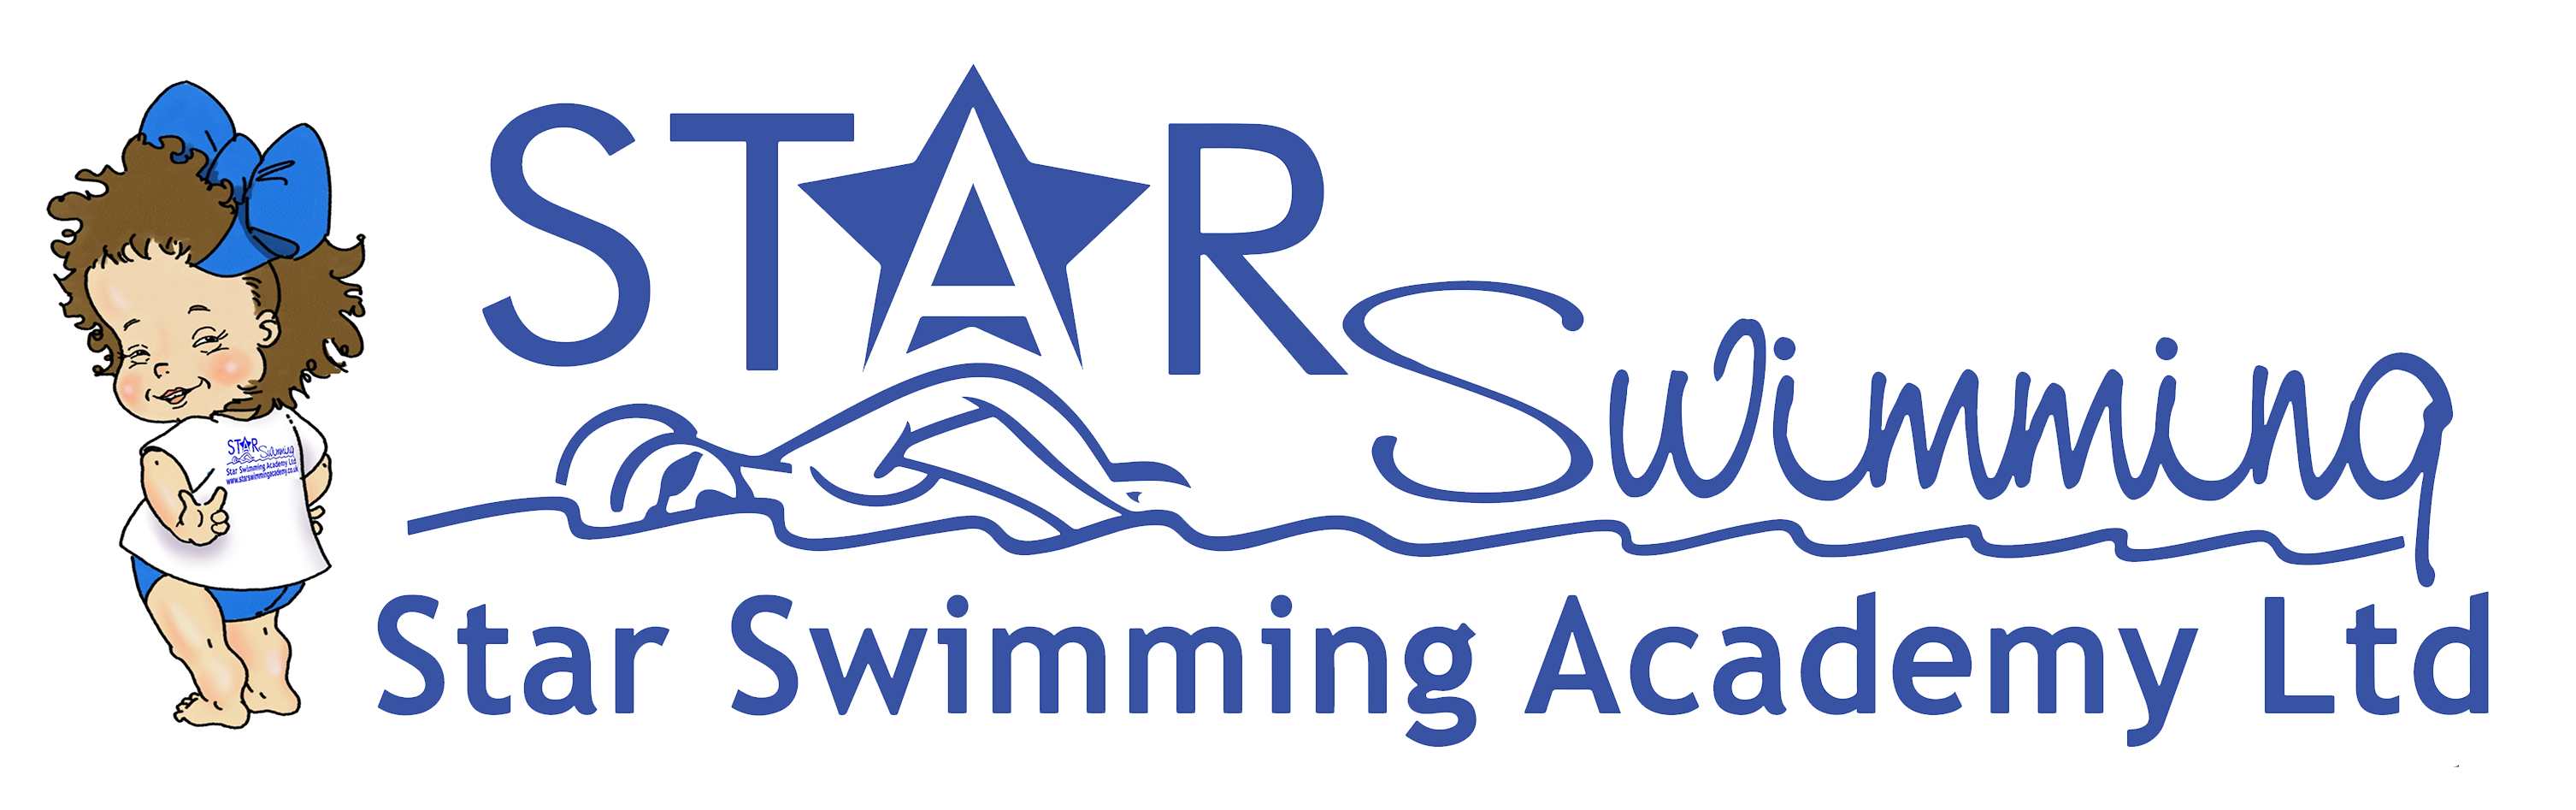 Star Swimming Academy